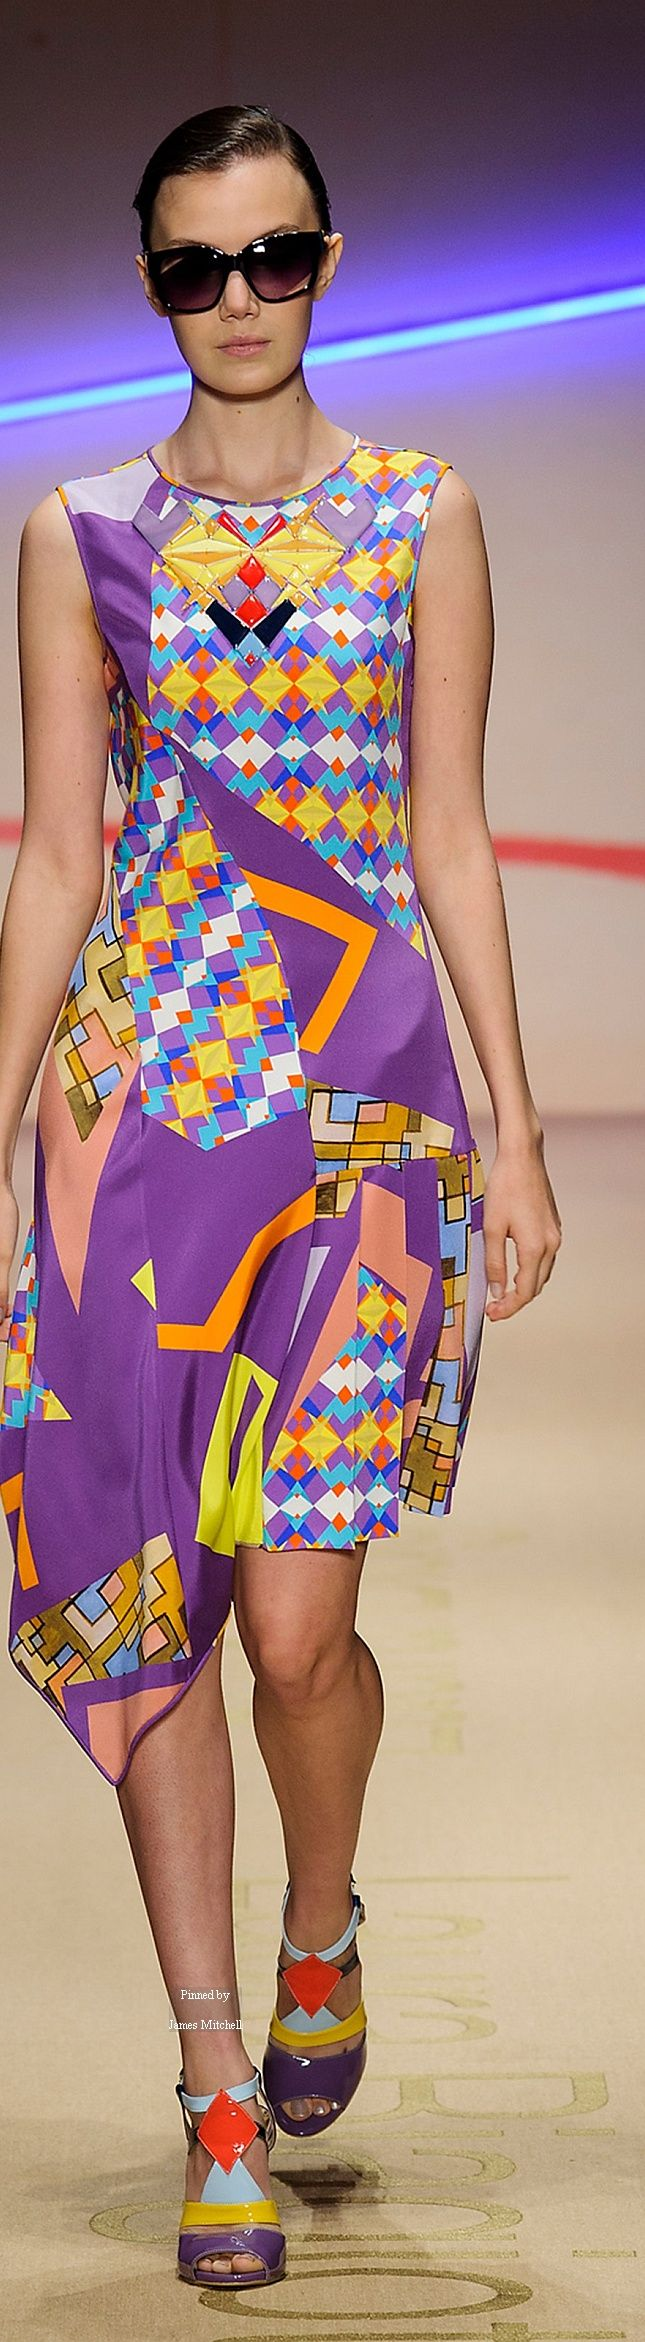 Laura Biagiotti Spring Summer 2015 Ready-To-Wear collection. V